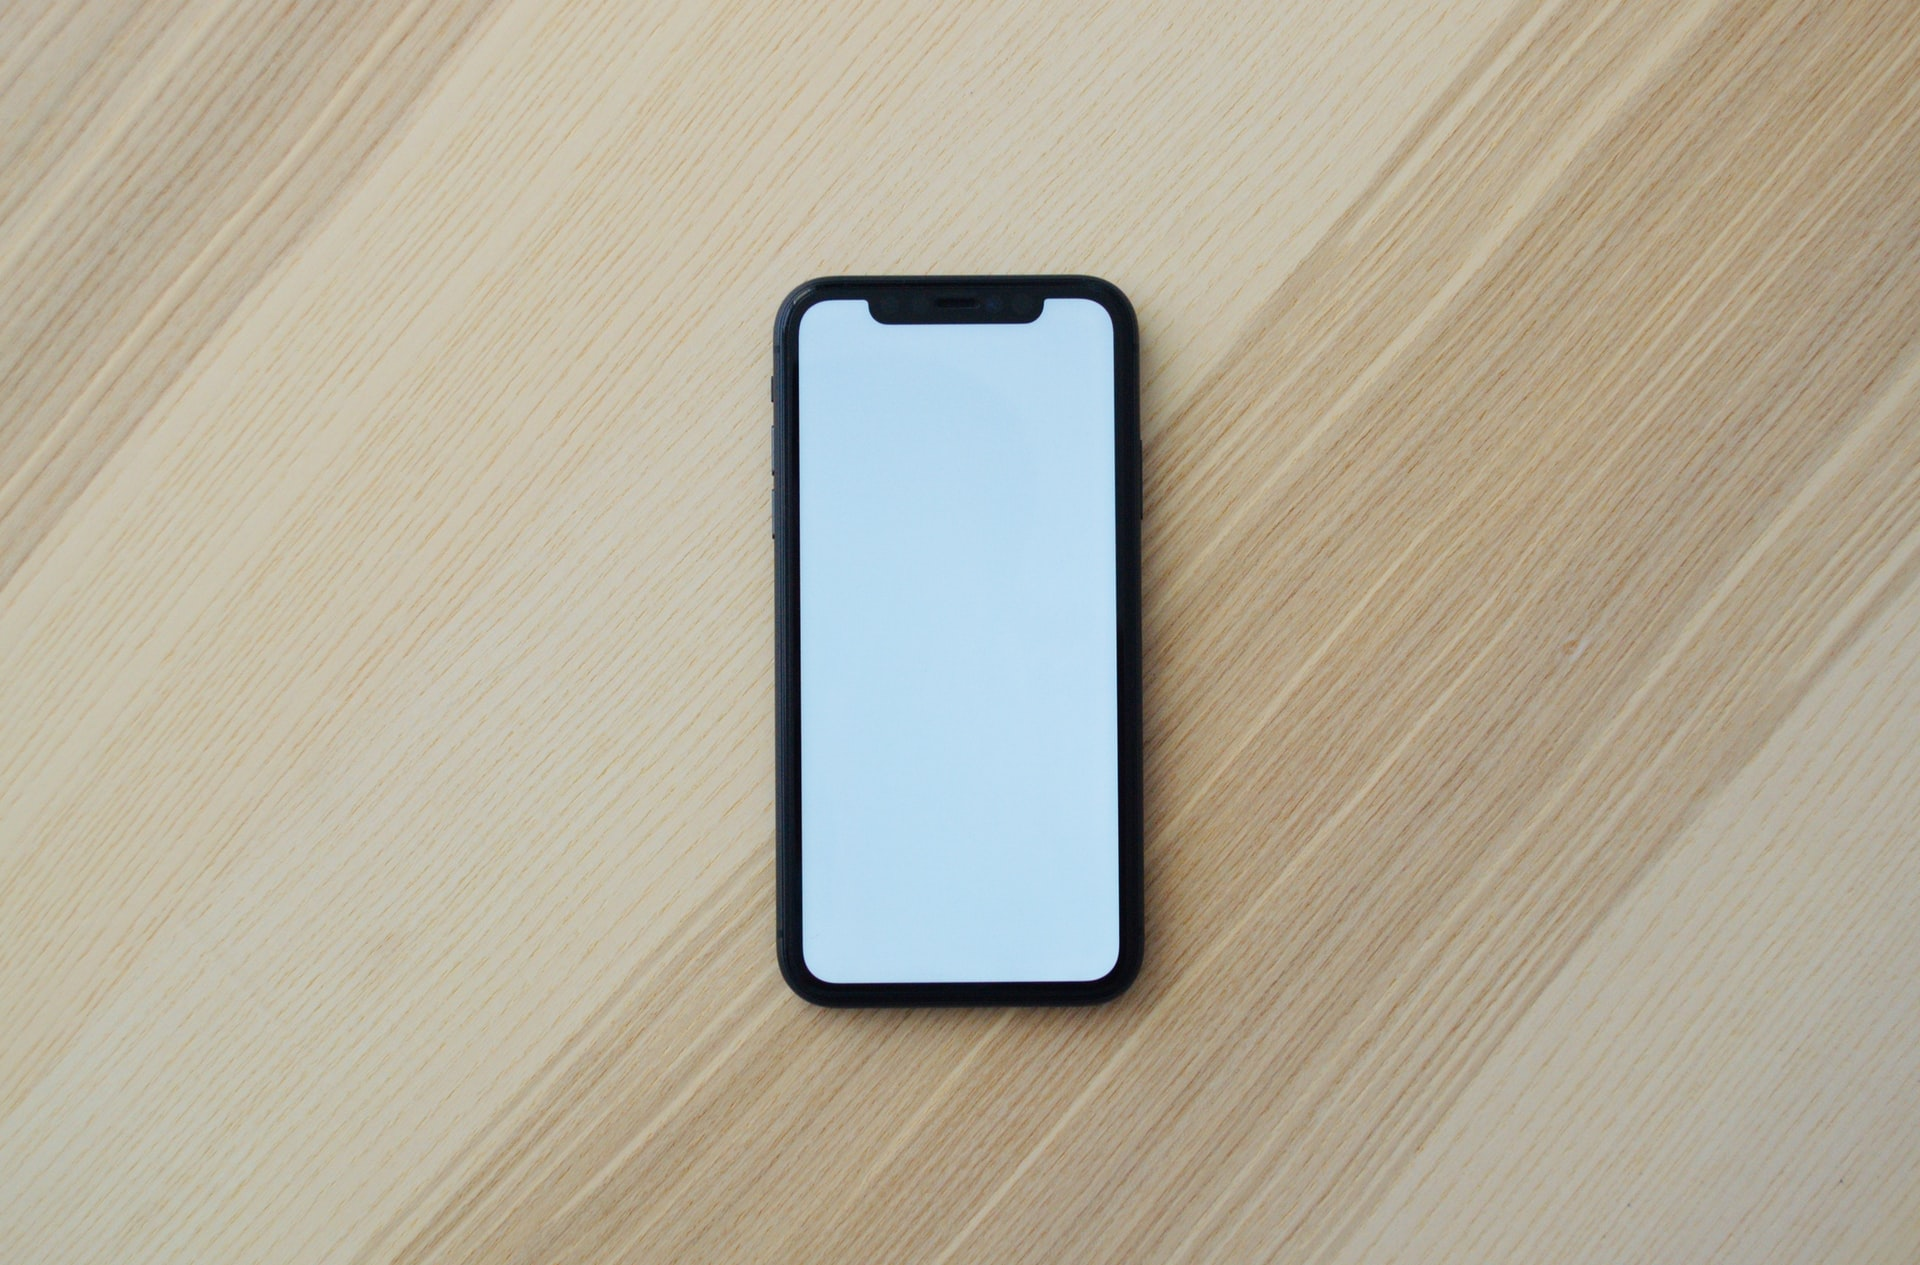 cellphone with blank white screen on a light wood tabletop